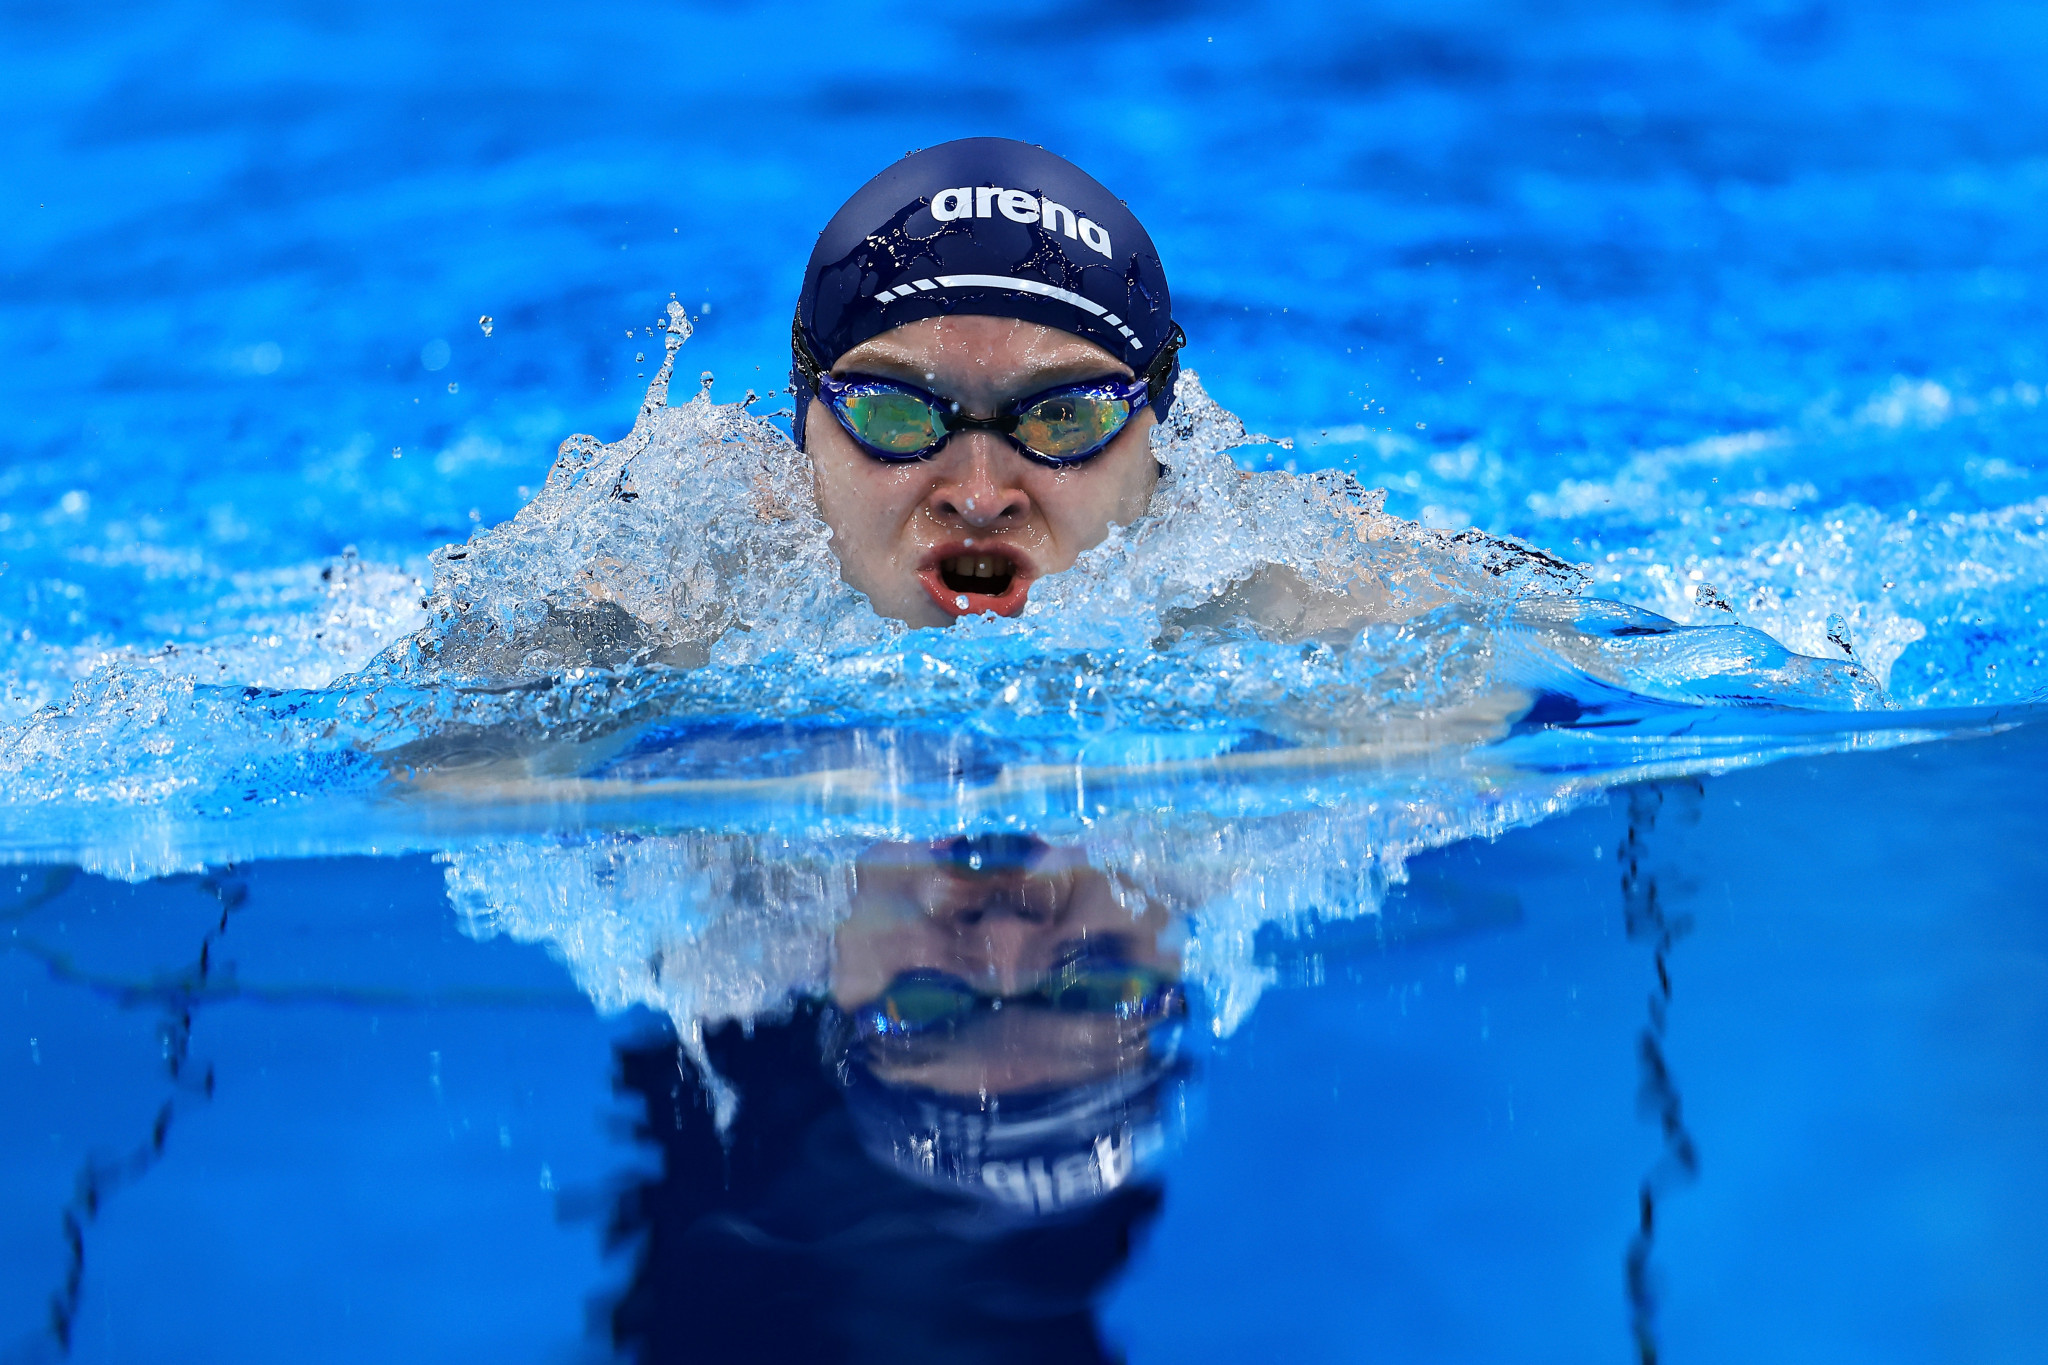 Dmitrii Cherniaev broke the 100m breastsroke SB4 world record by more than a quarter of a second ©Getty Images